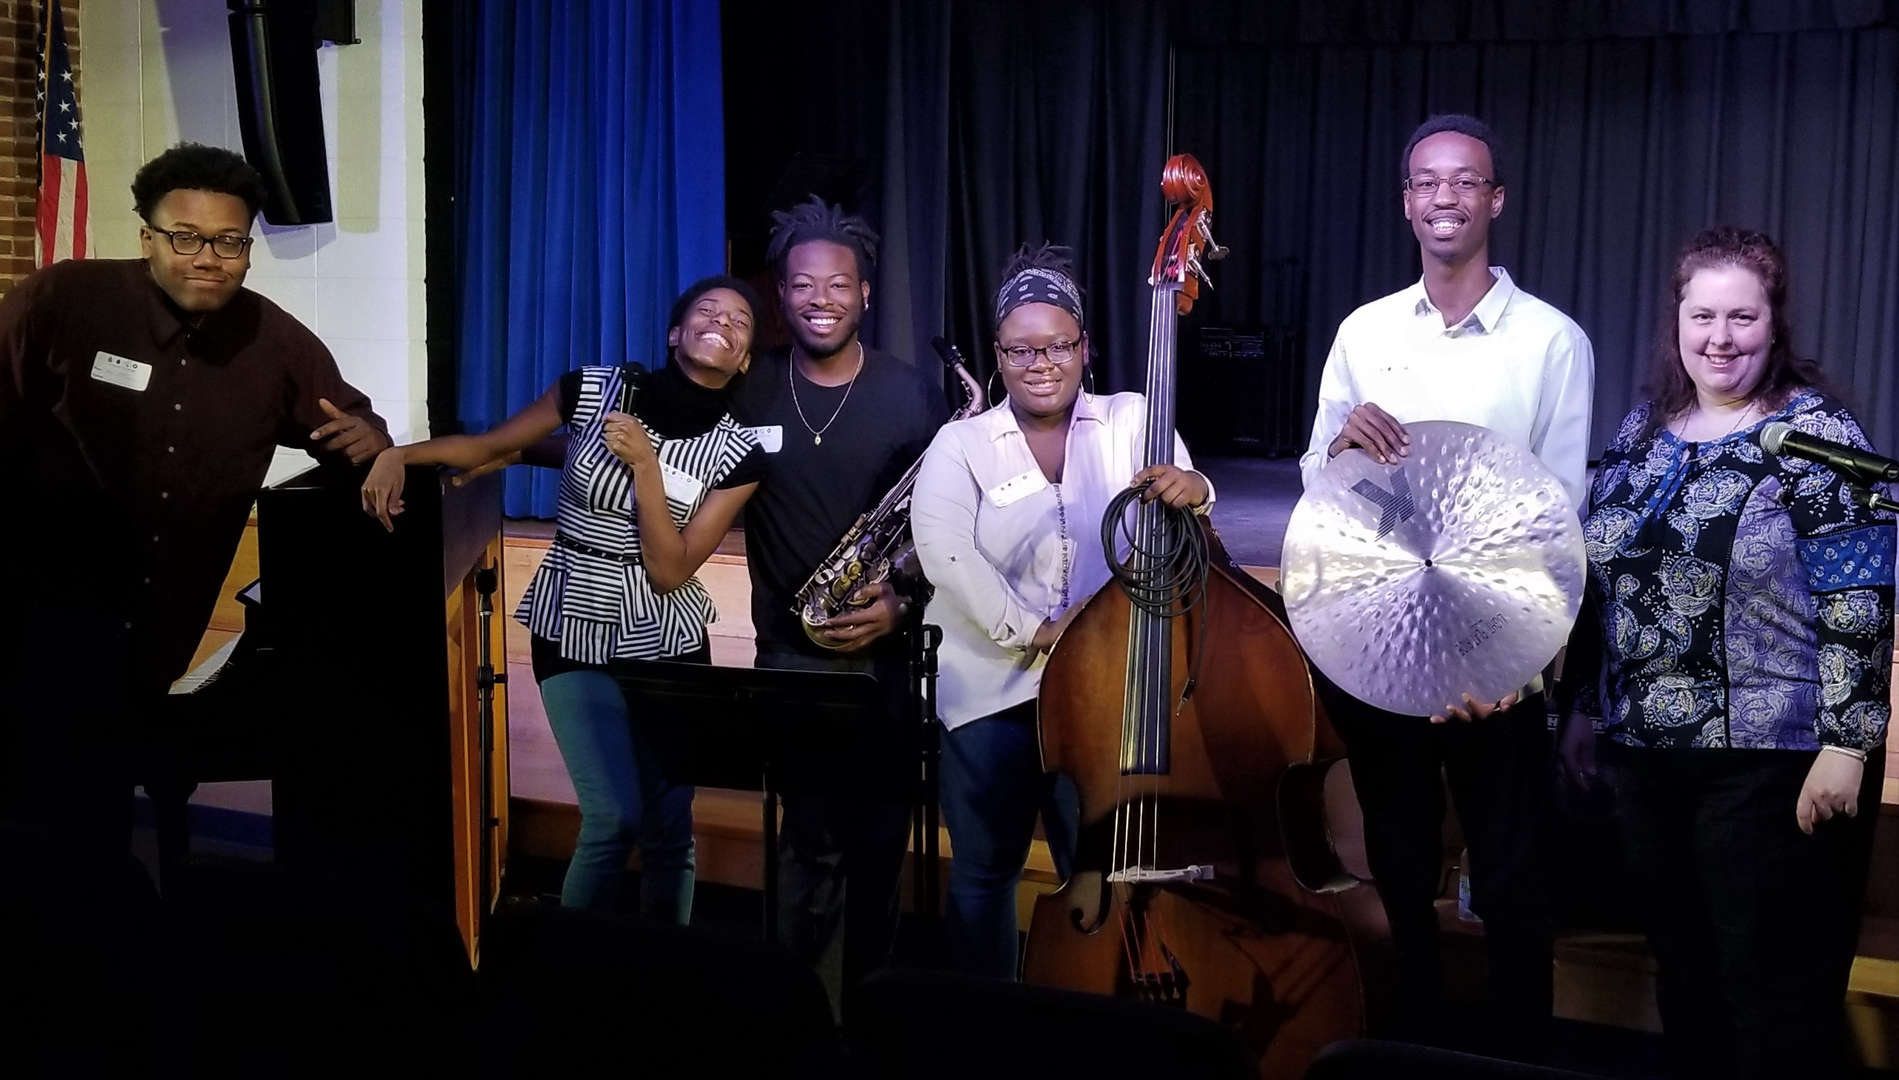 Five musicians pose for a photo with SWBOCES parent Rebecca Charnow.